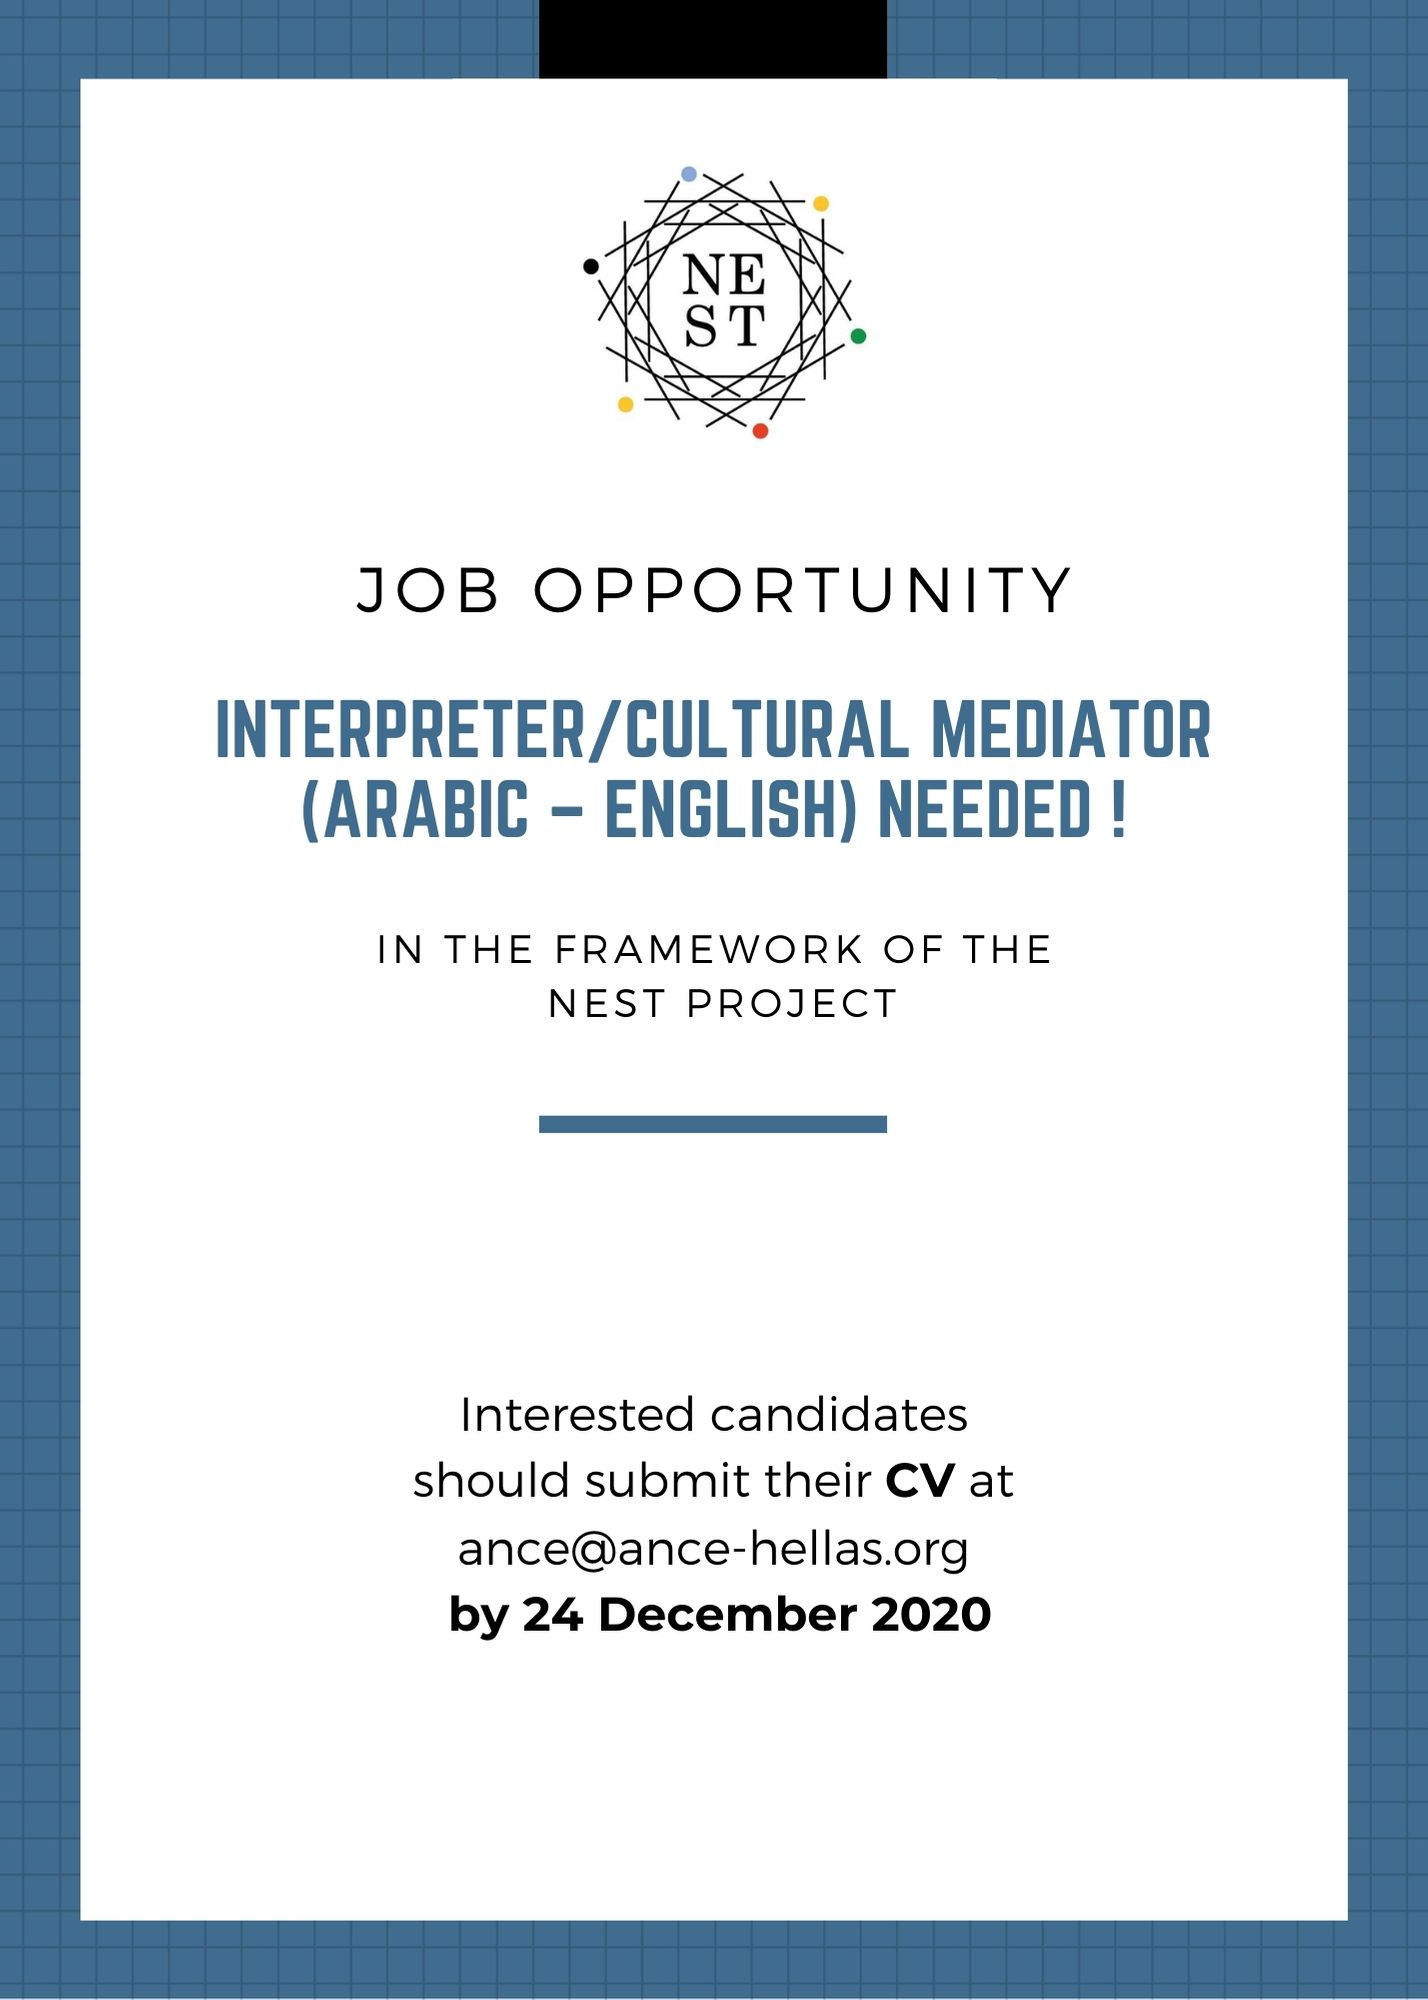 New Job Opportunity: Interpreter / Cultural Mediator (Arabic – English)